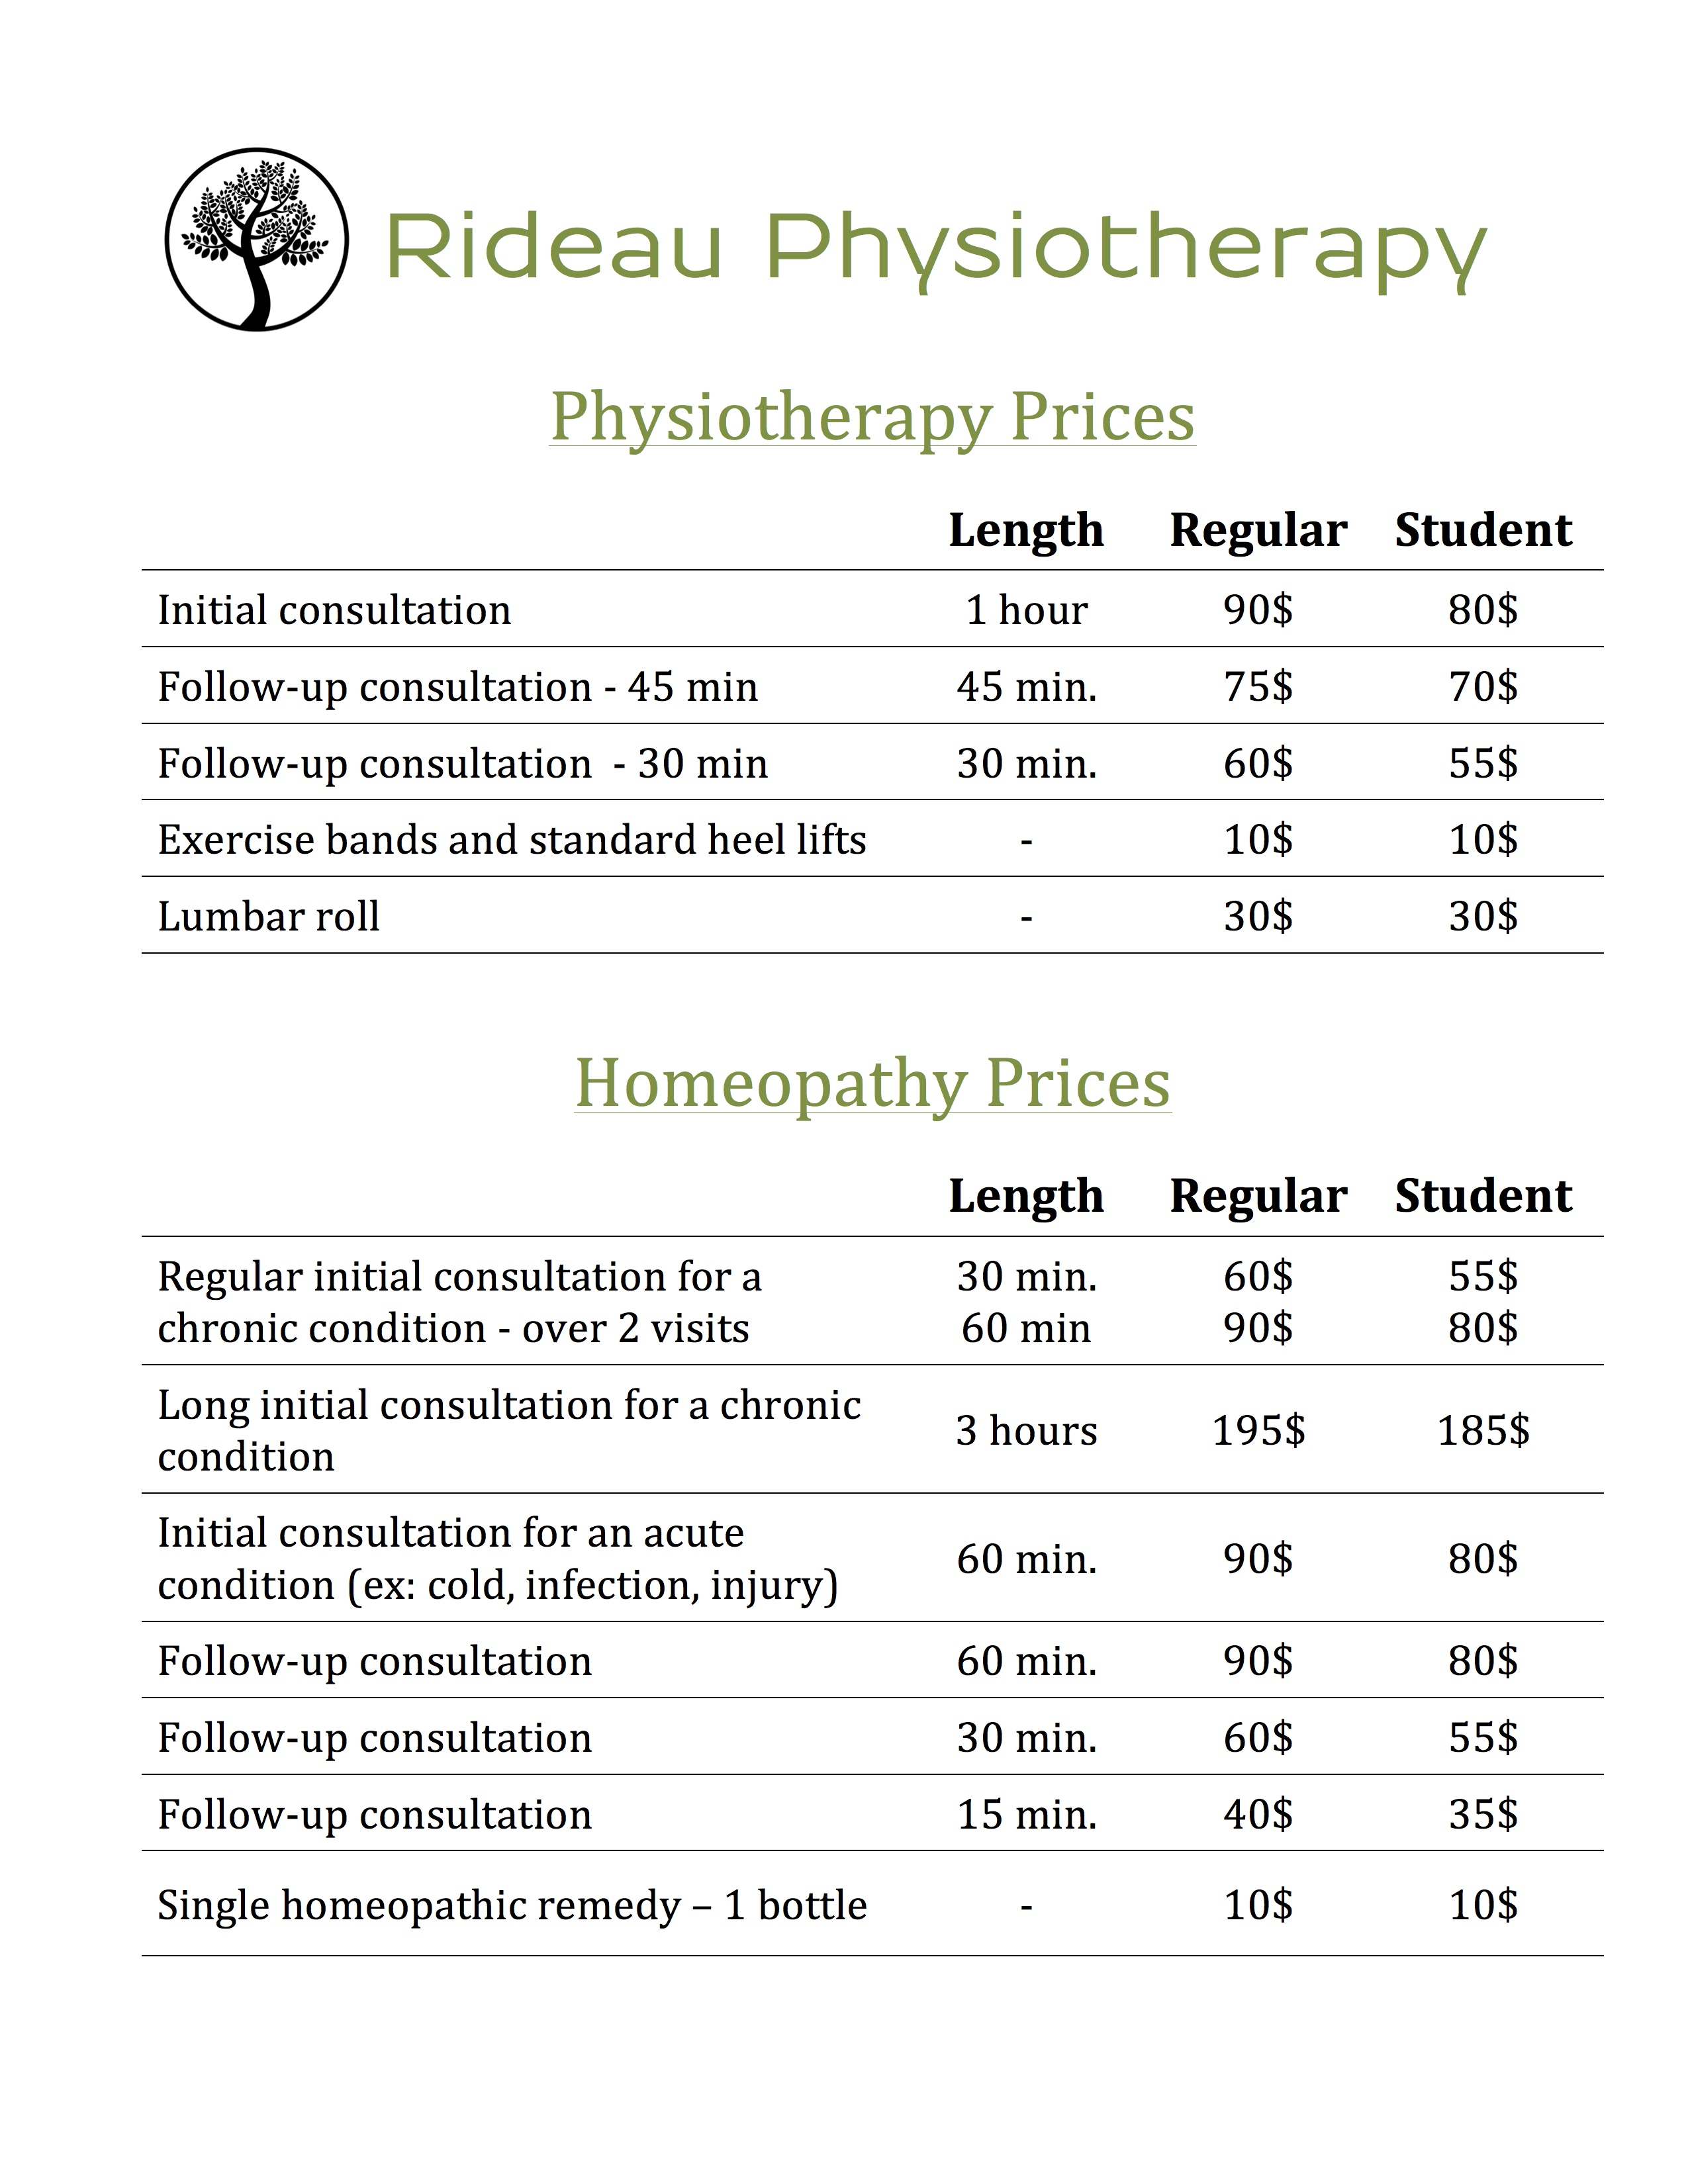 Fee Schedule - Rideau Physiotherapy JAN 2018